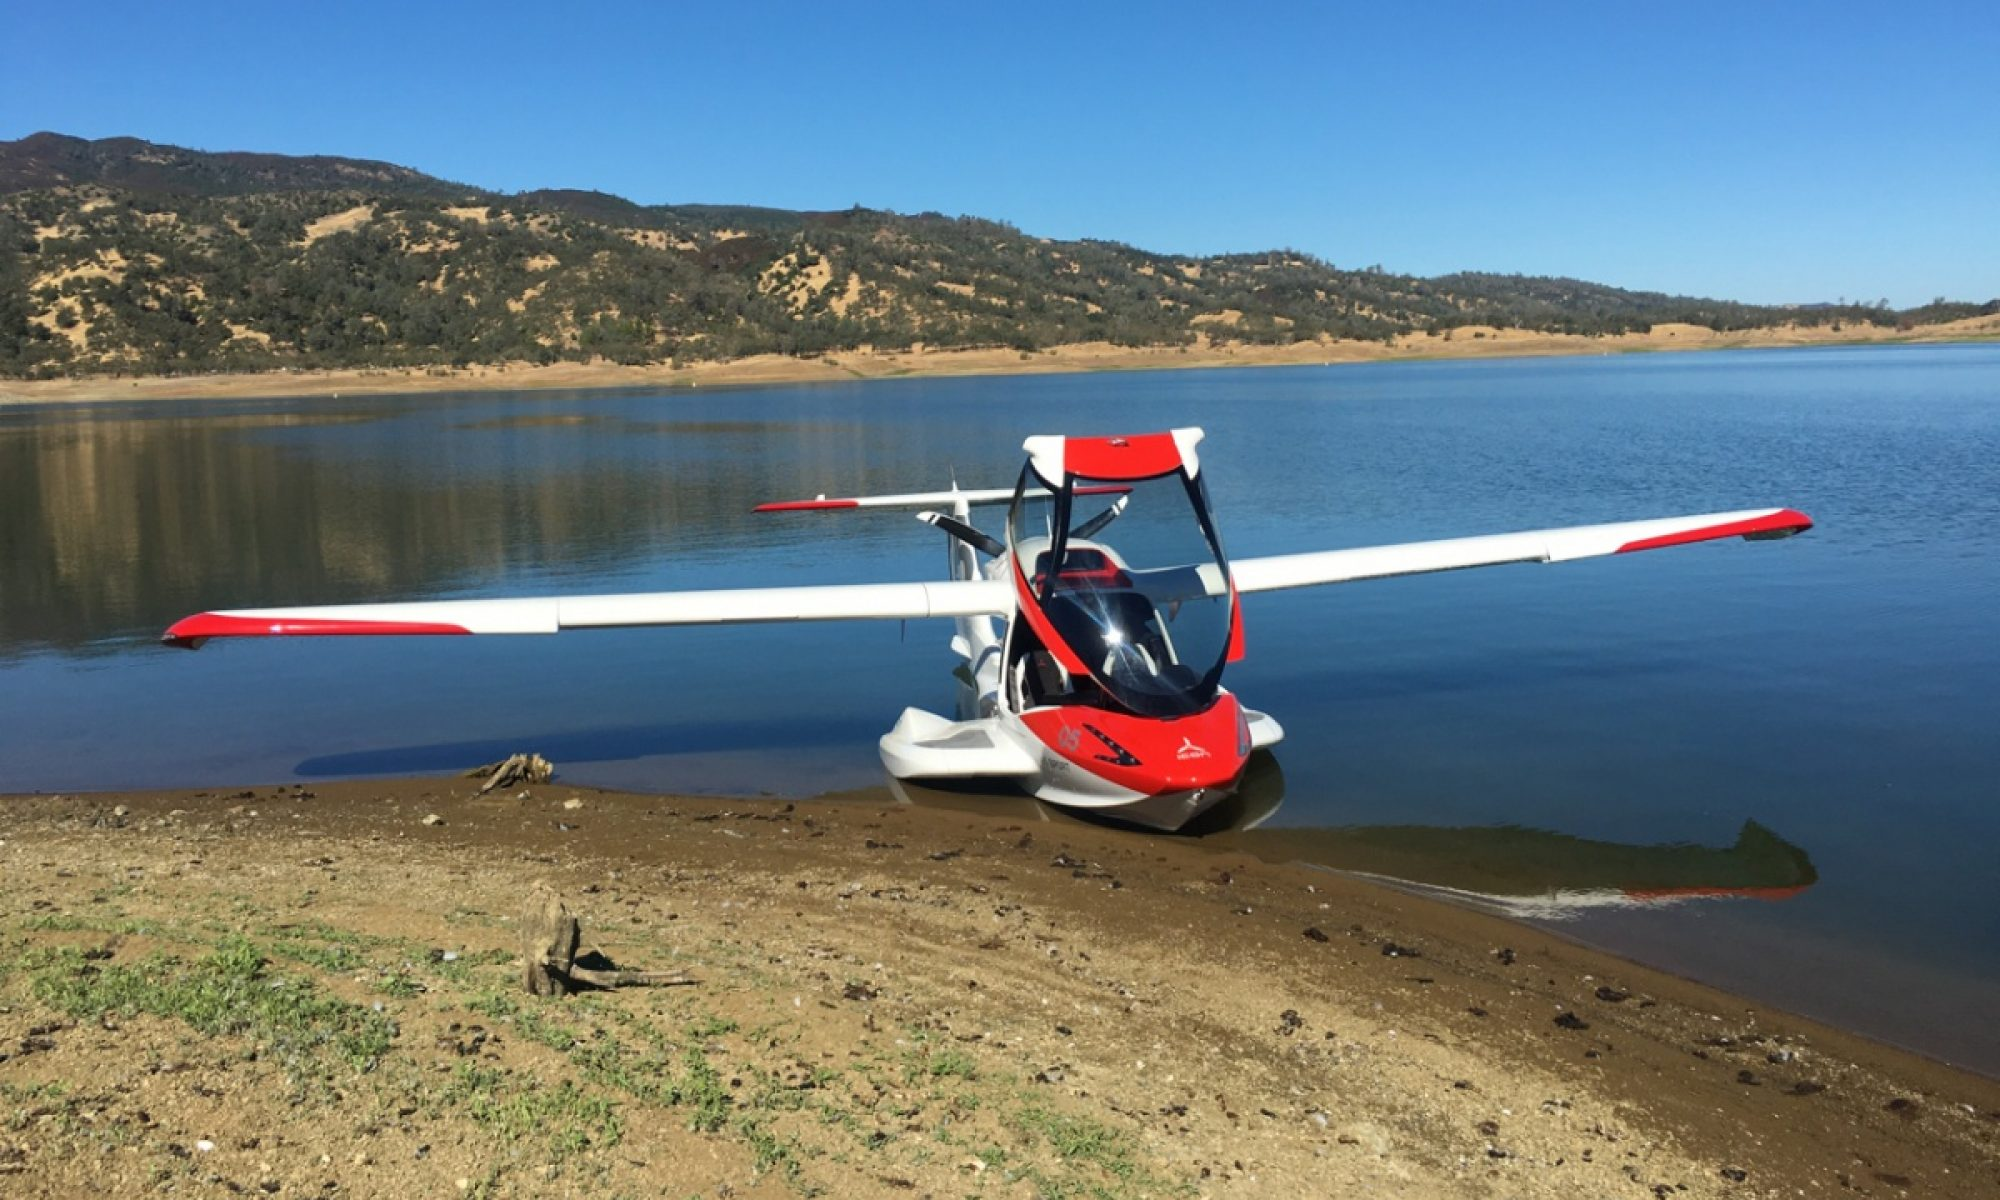 ICON A5 Review – Grab your water shoes, beach towel and swimsuit!